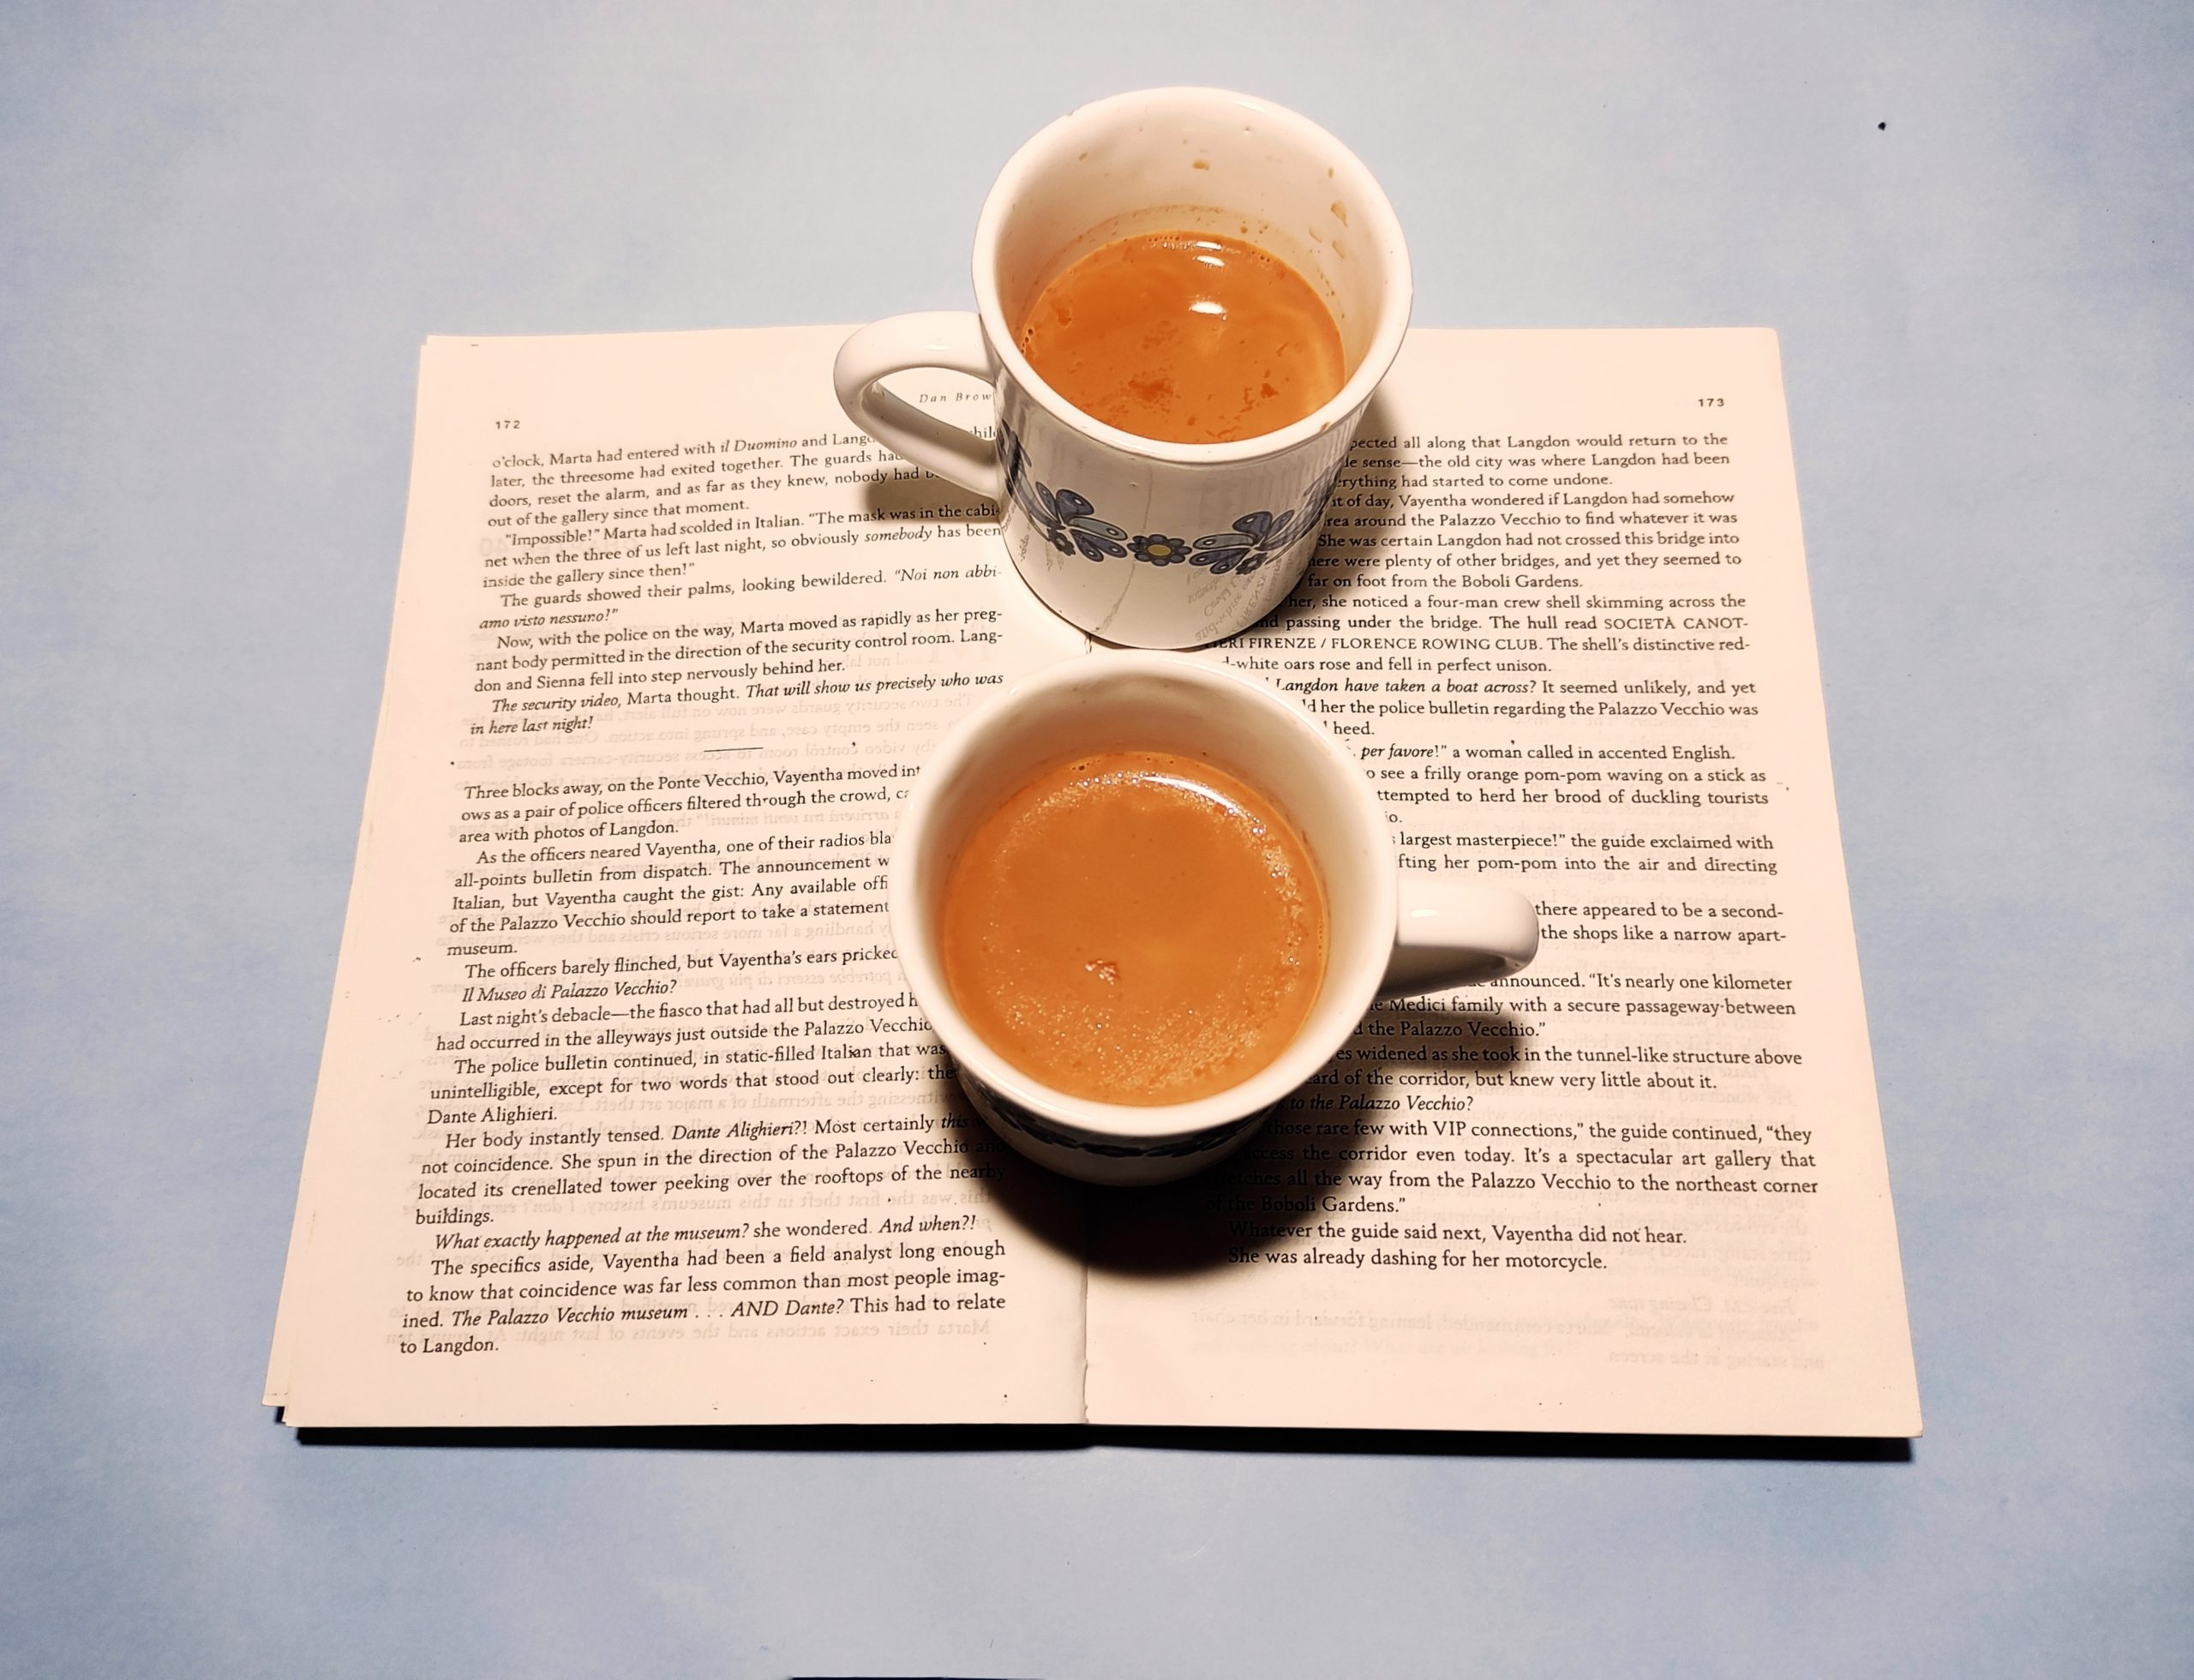 Tea cup over the book